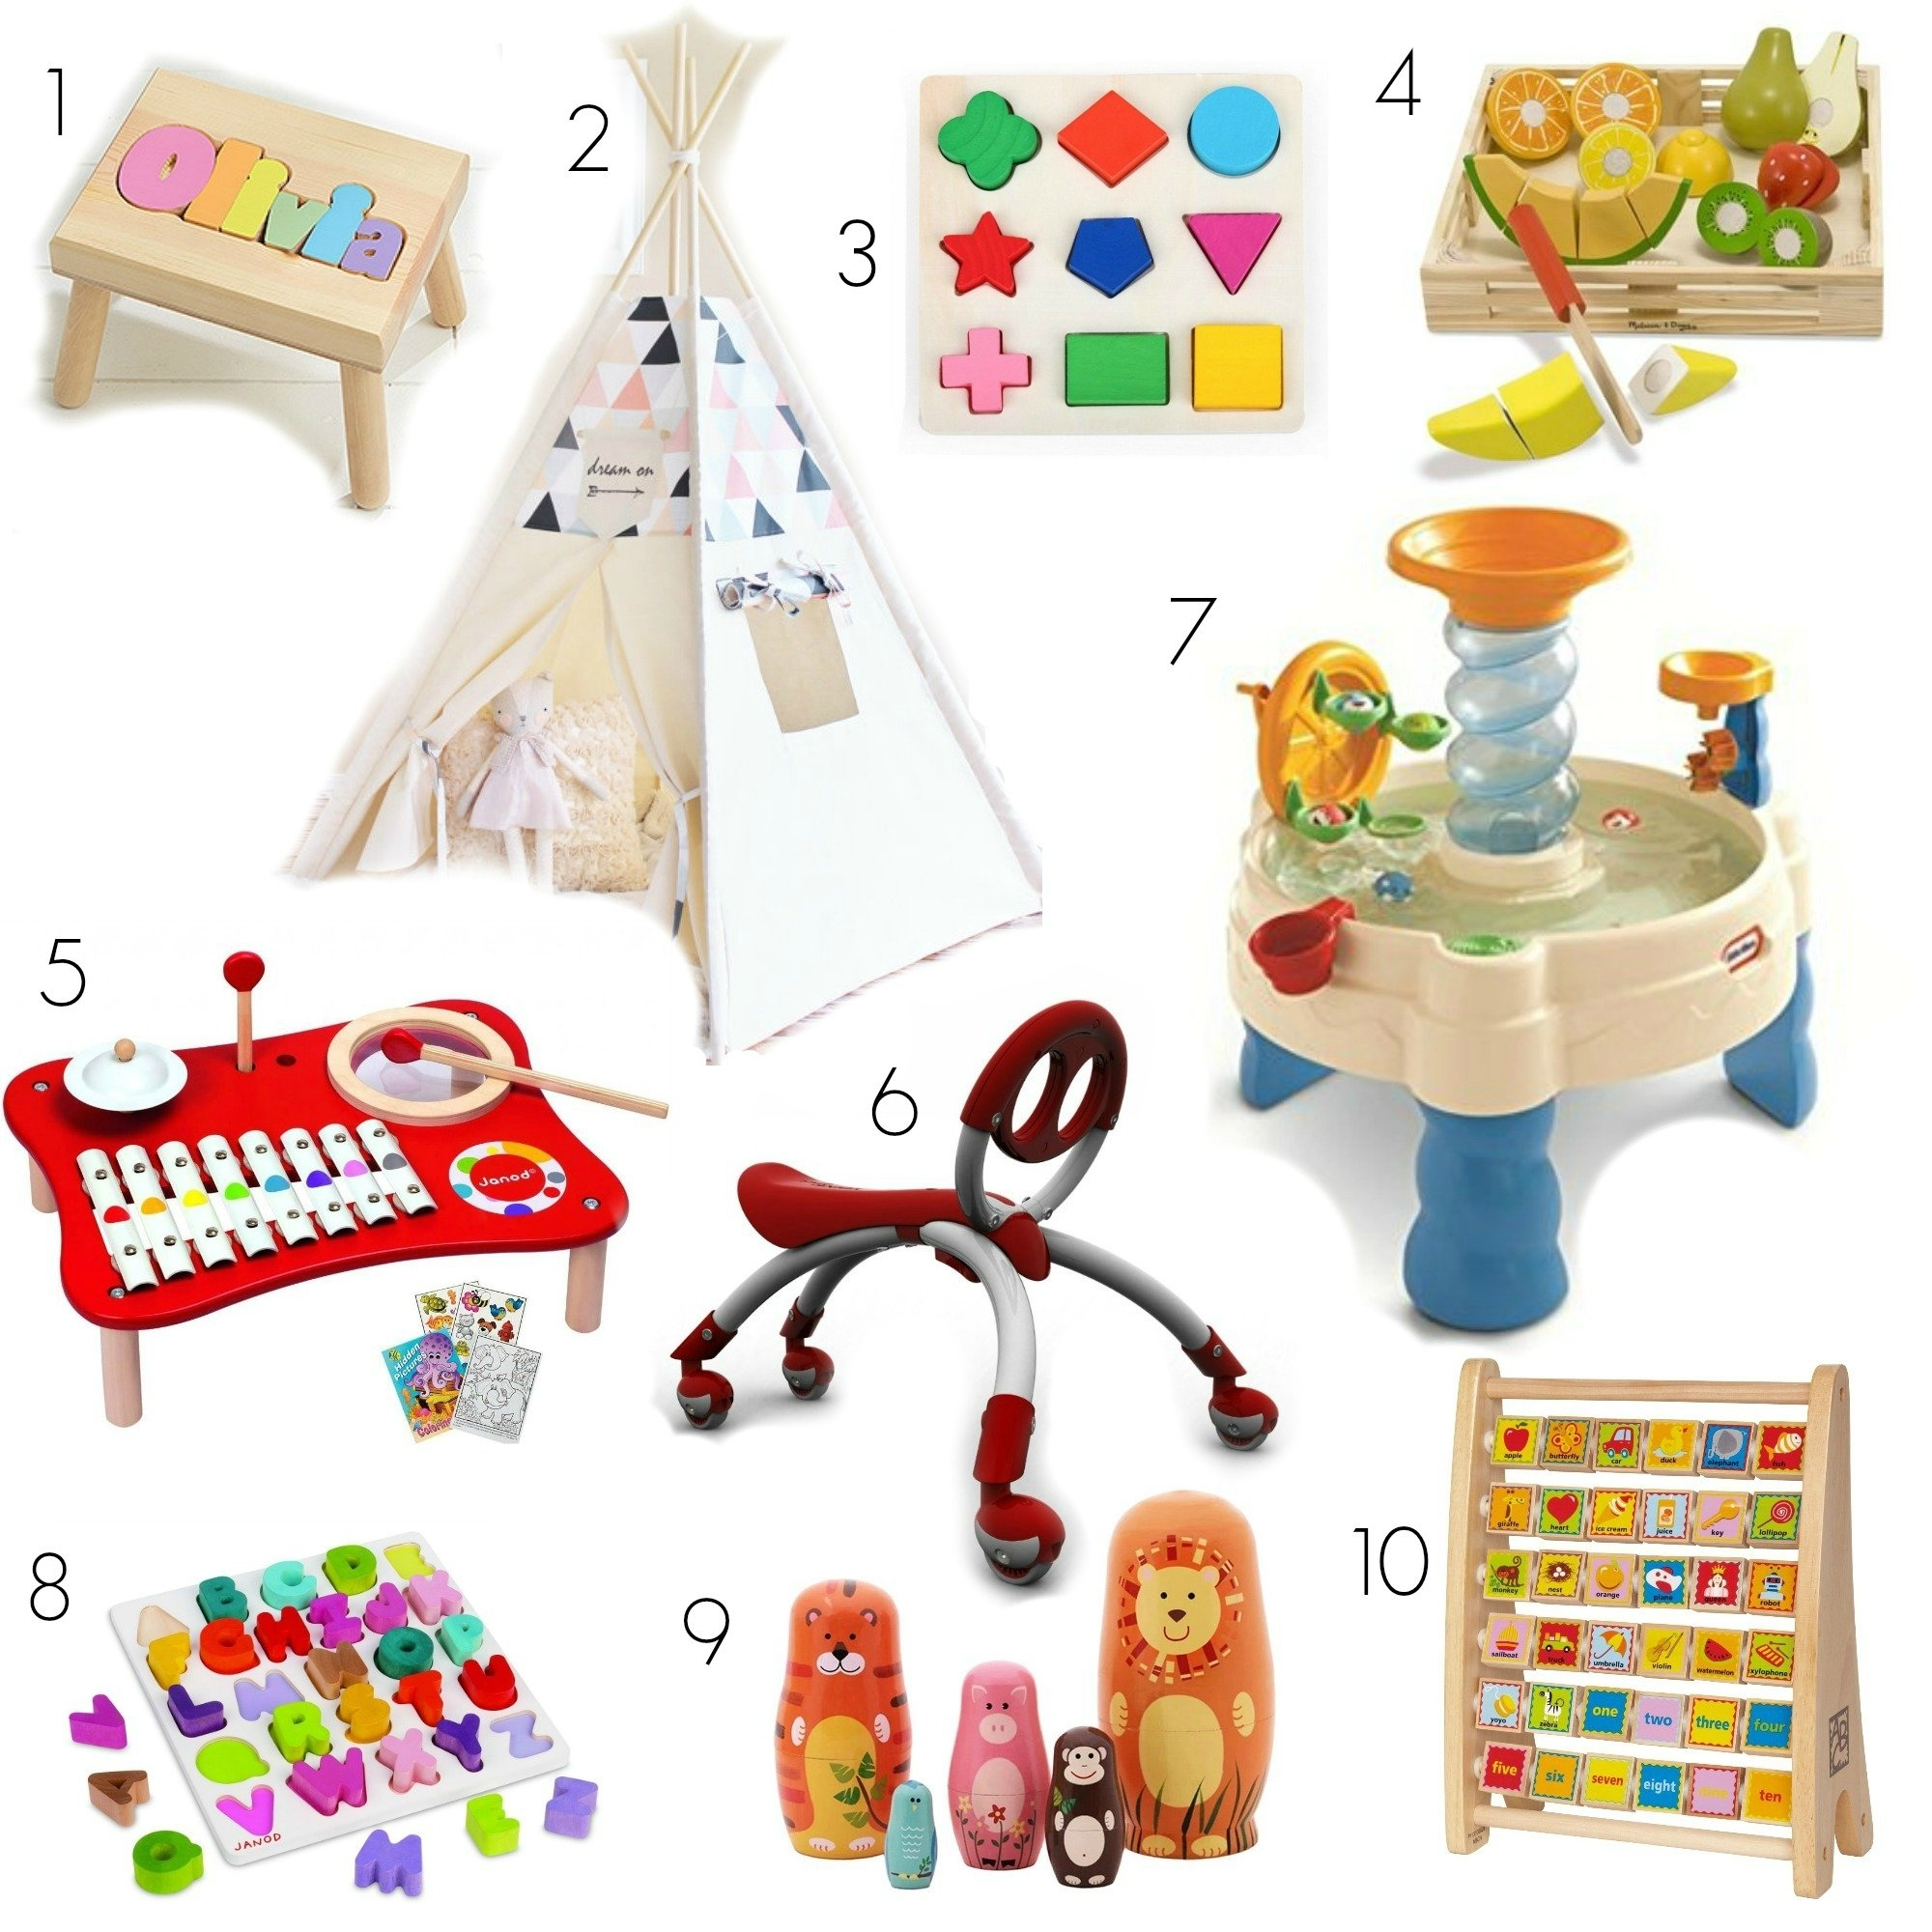 10 Attractive Baby First Birthday Gift Ideas Themes For A